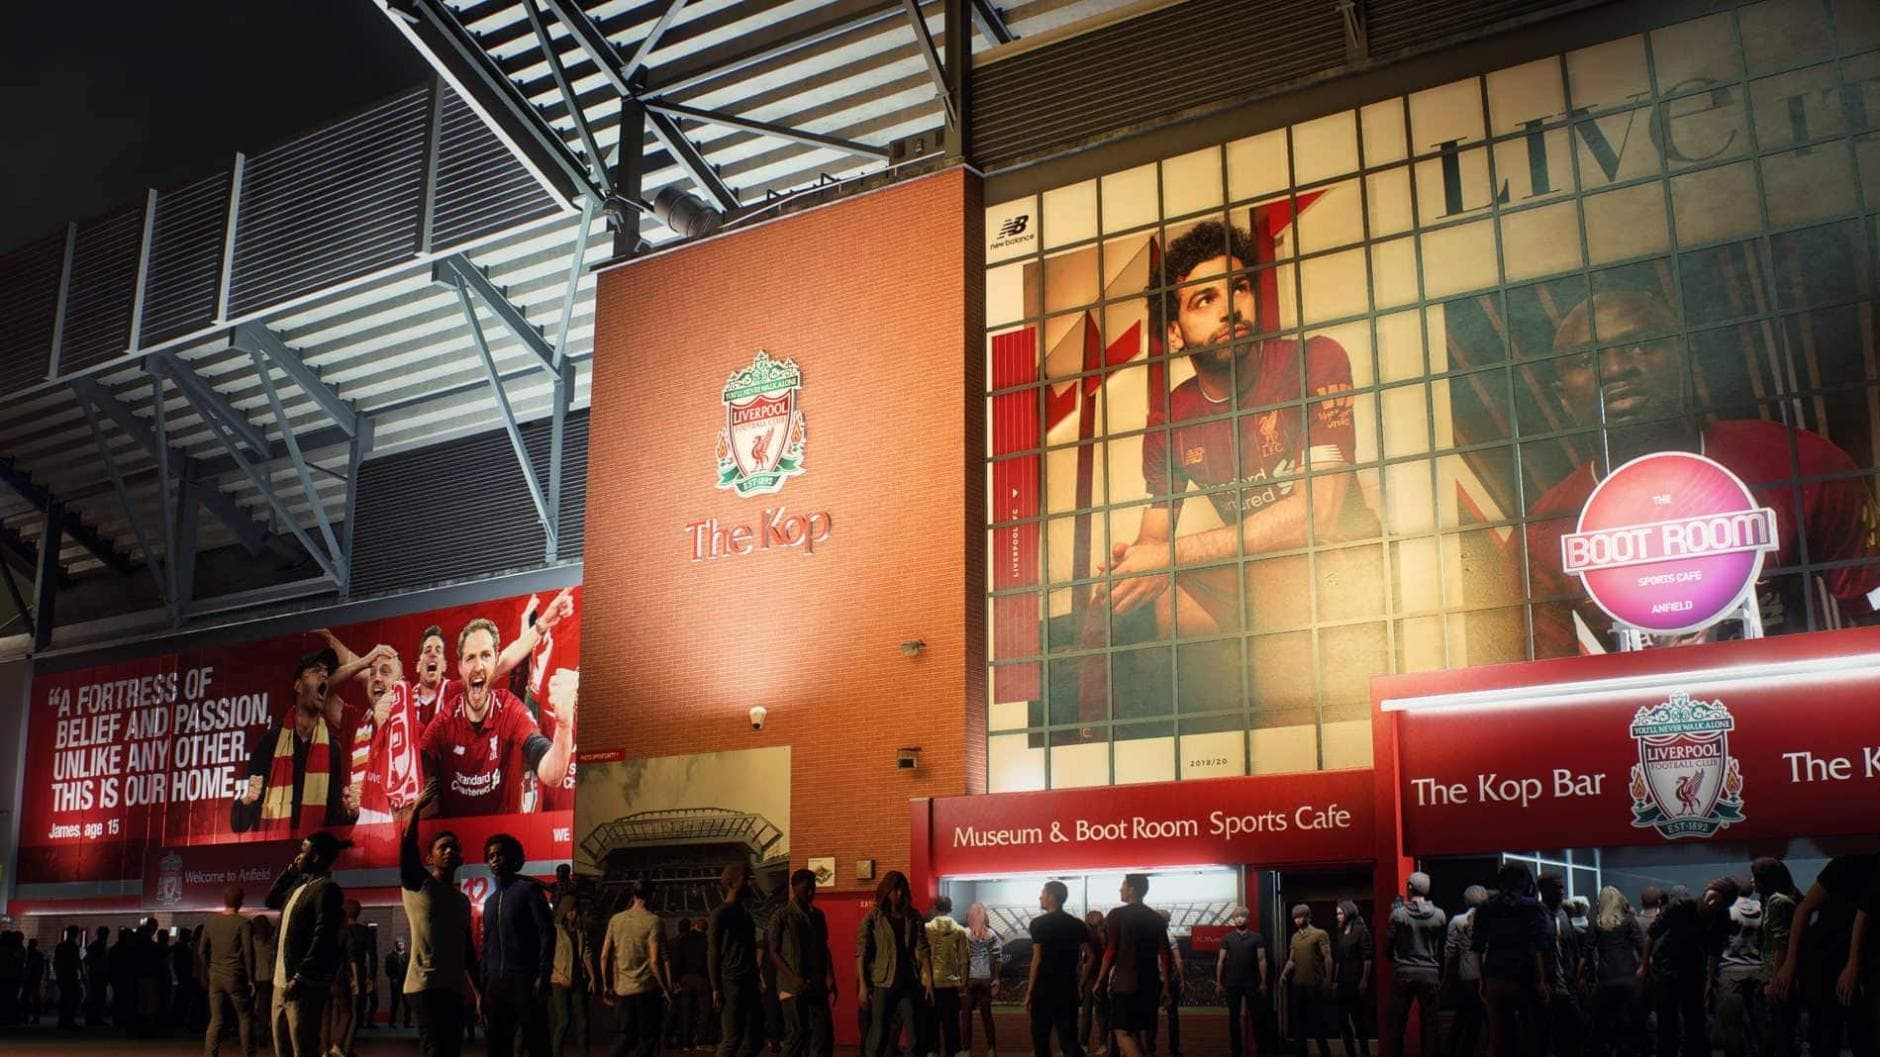 FIFA 21 Liverpool Anfield The Kop